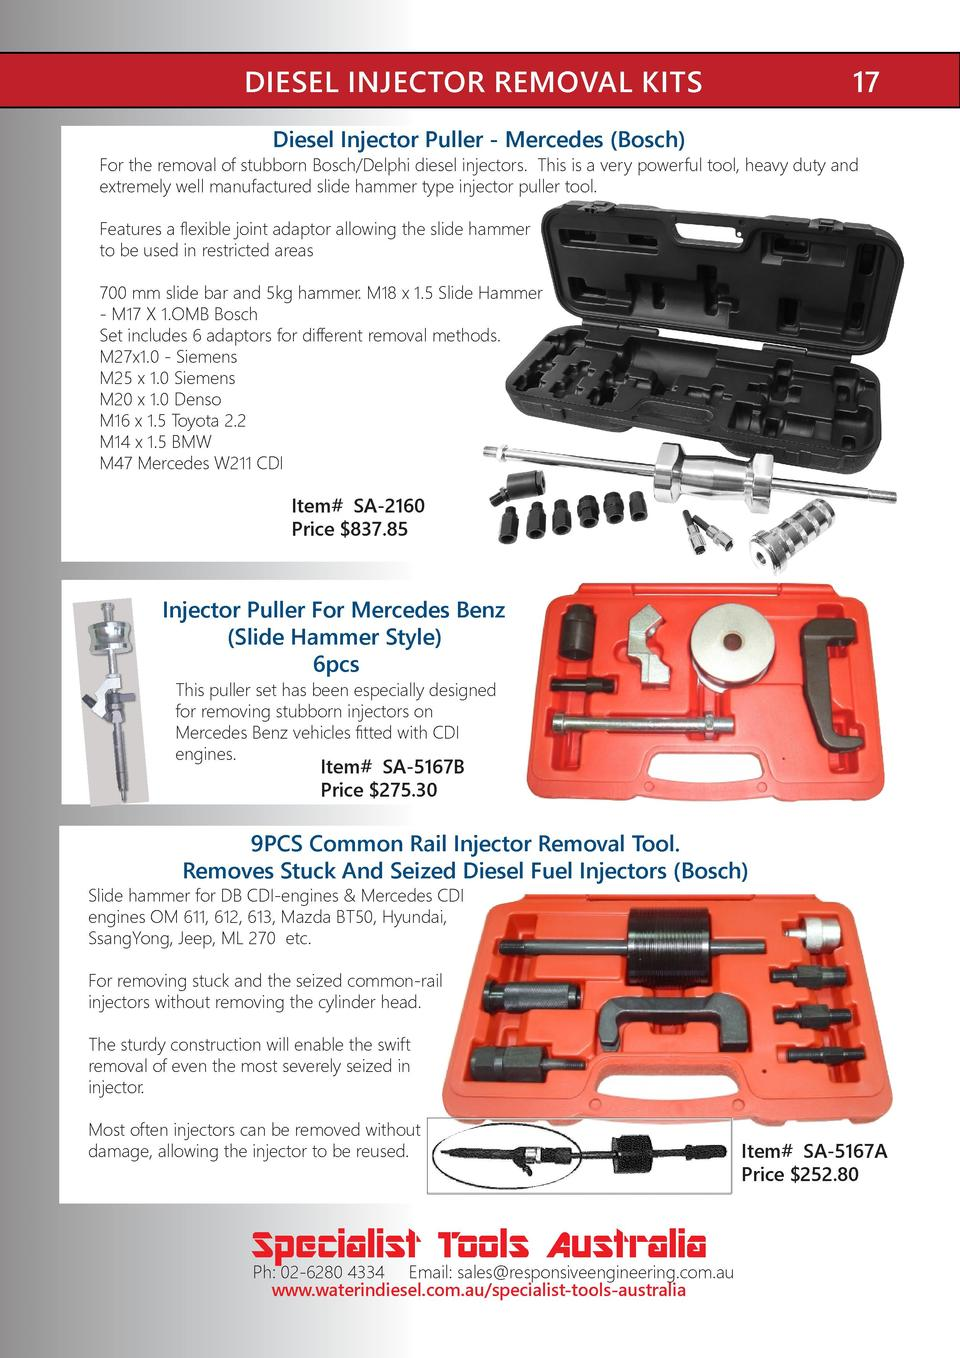 Govoni GO469 Multi-Stage Injector Puller Kit suits M9R Nissan//Renault//Opel